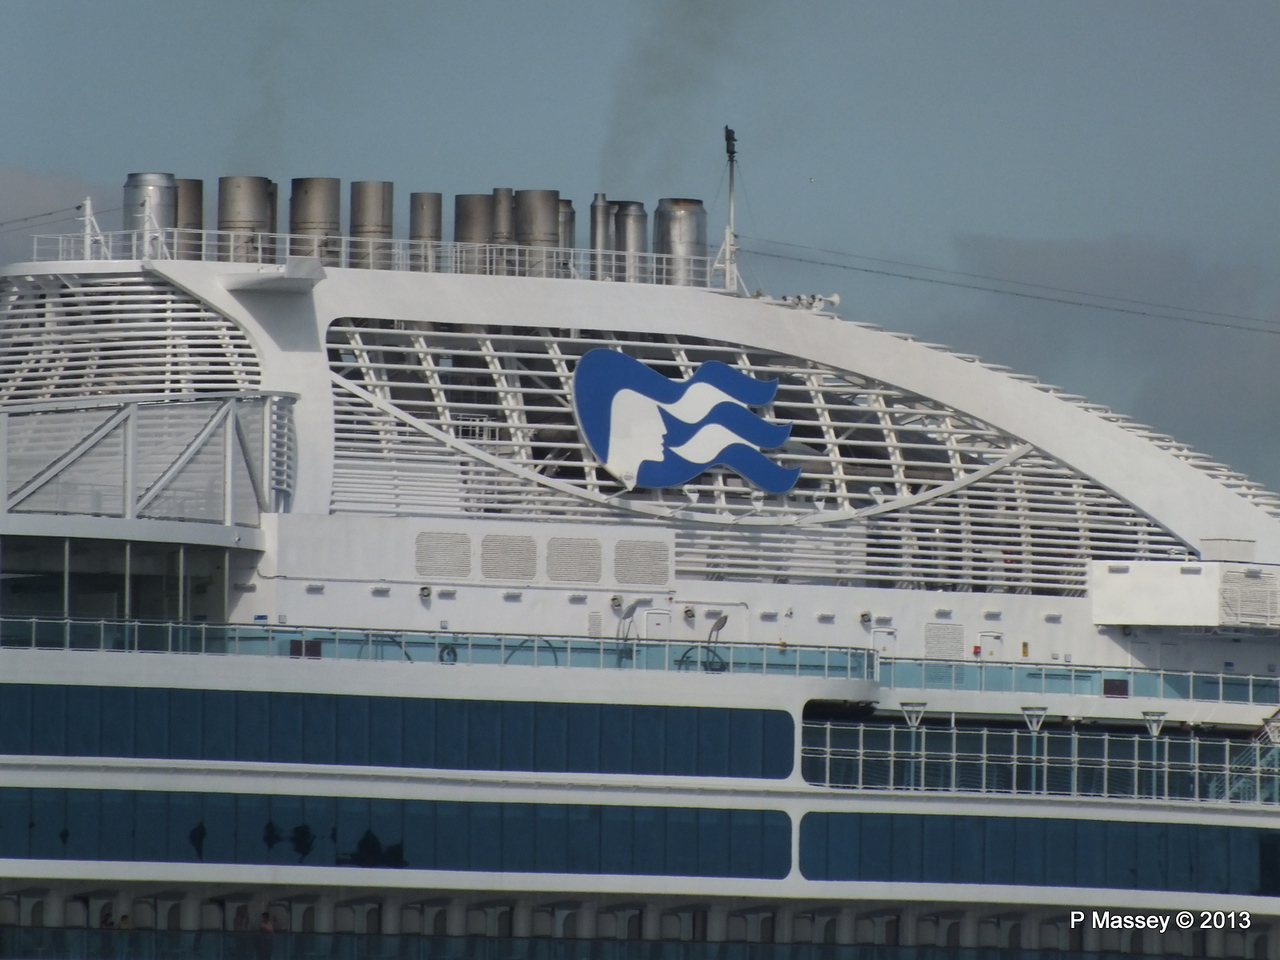 ROYAL PRINCESS Departing Southampton PDM 09-06-2013 17-24-17